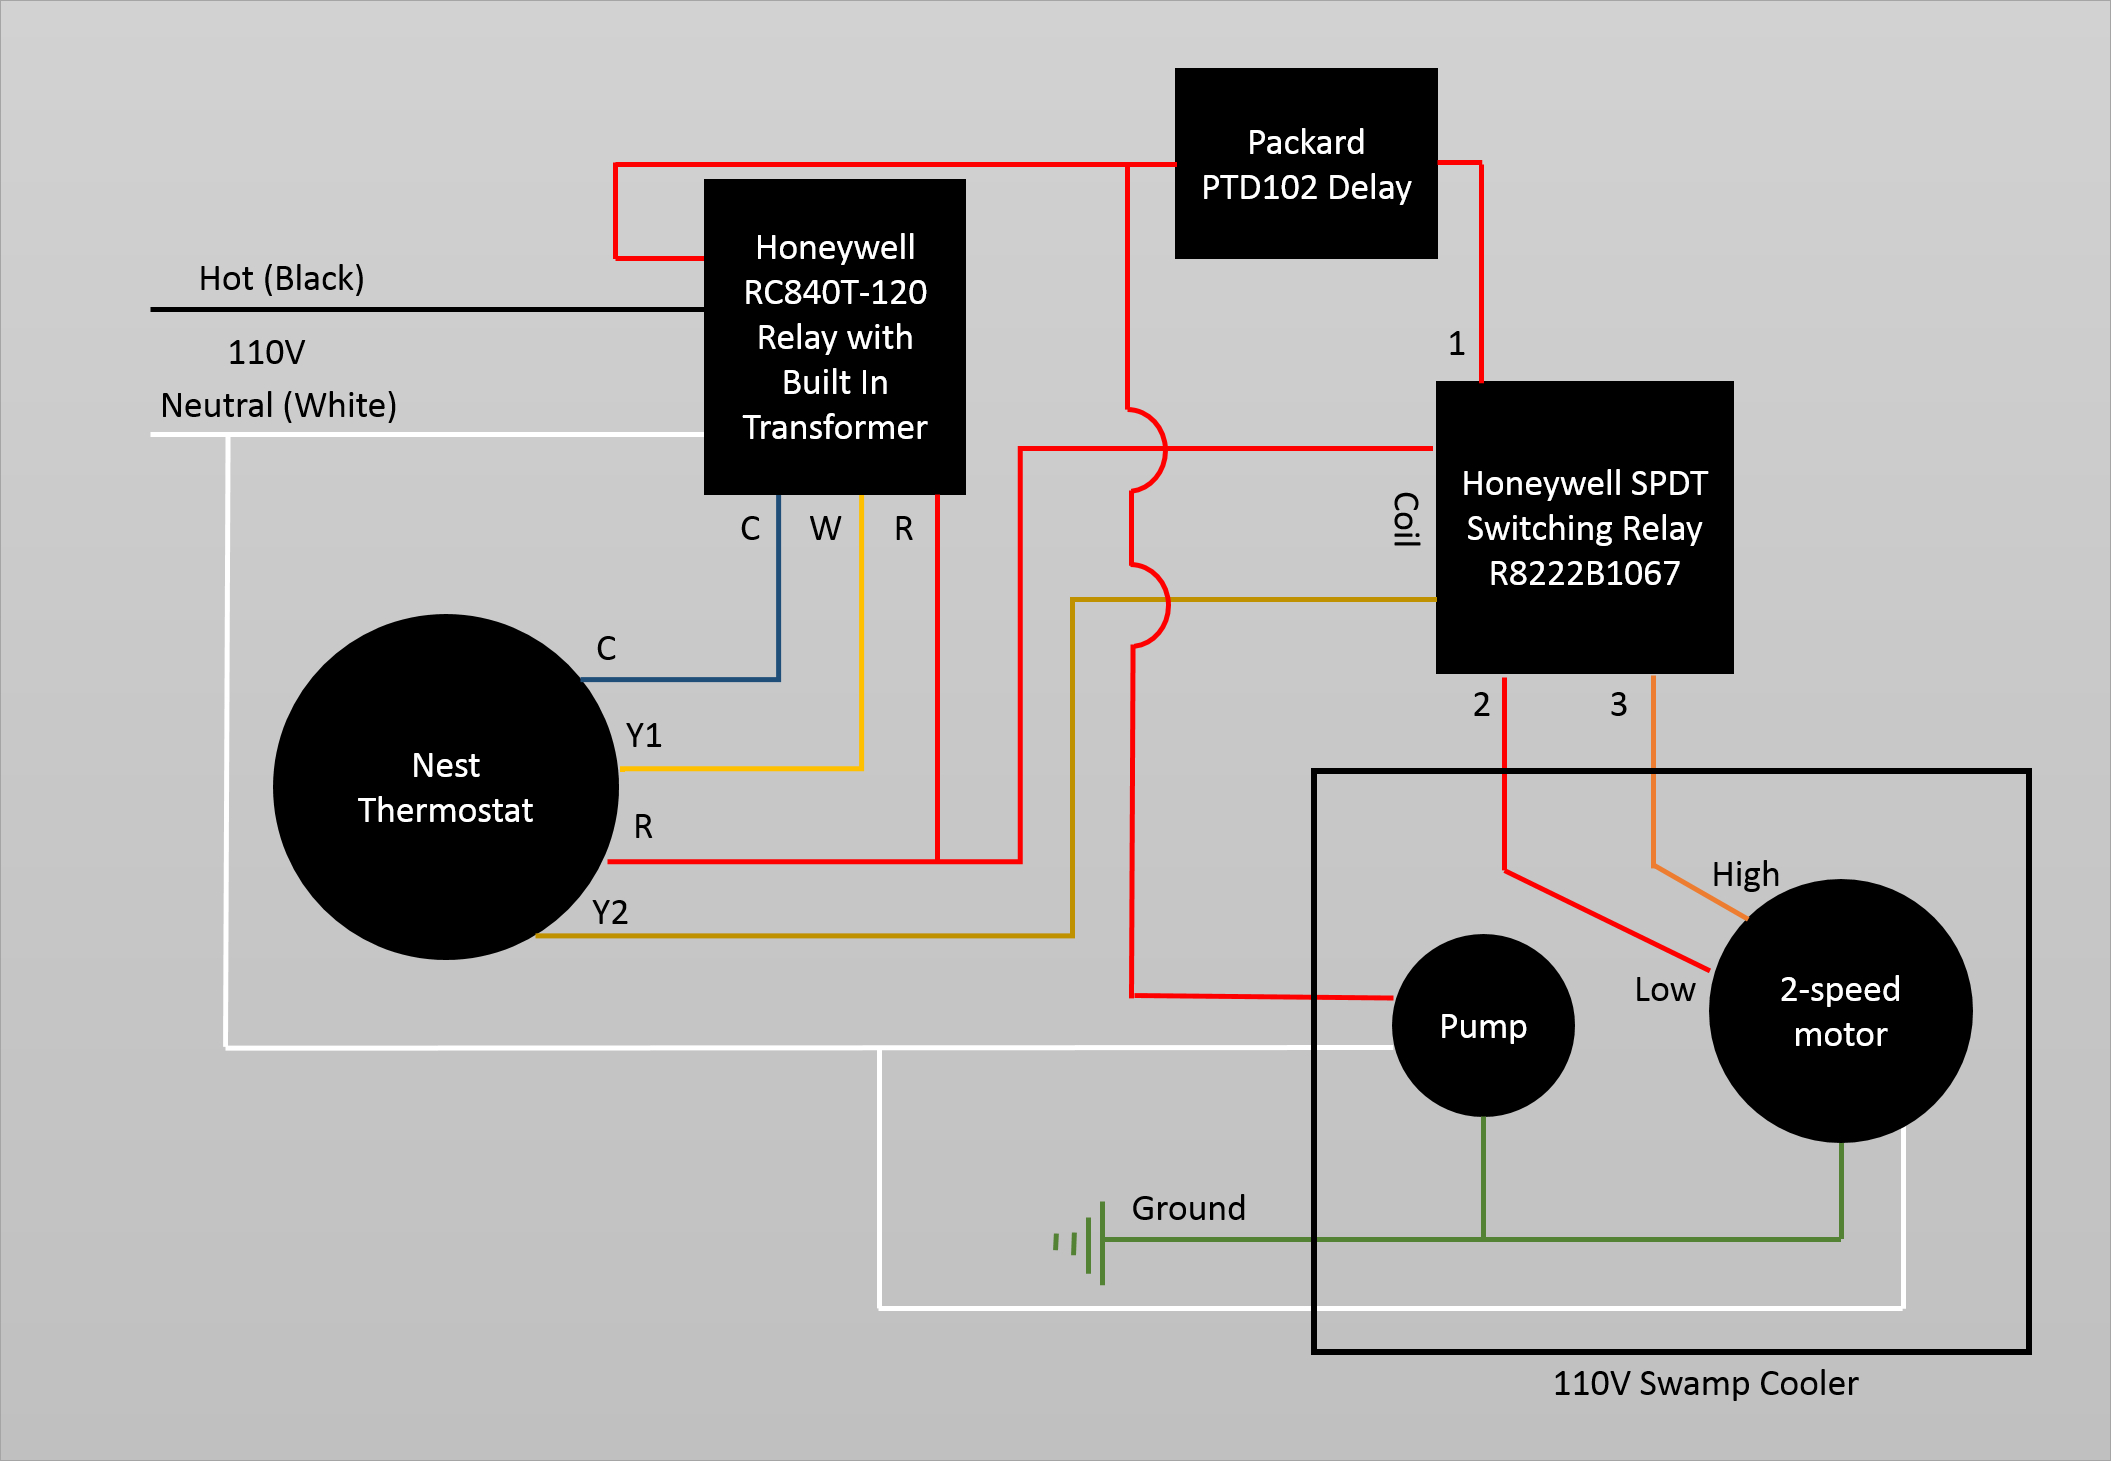 Nest Wiring Diagram For Heat Pump System | Wiring Library - Nest Gen 2 Wiring Diagram